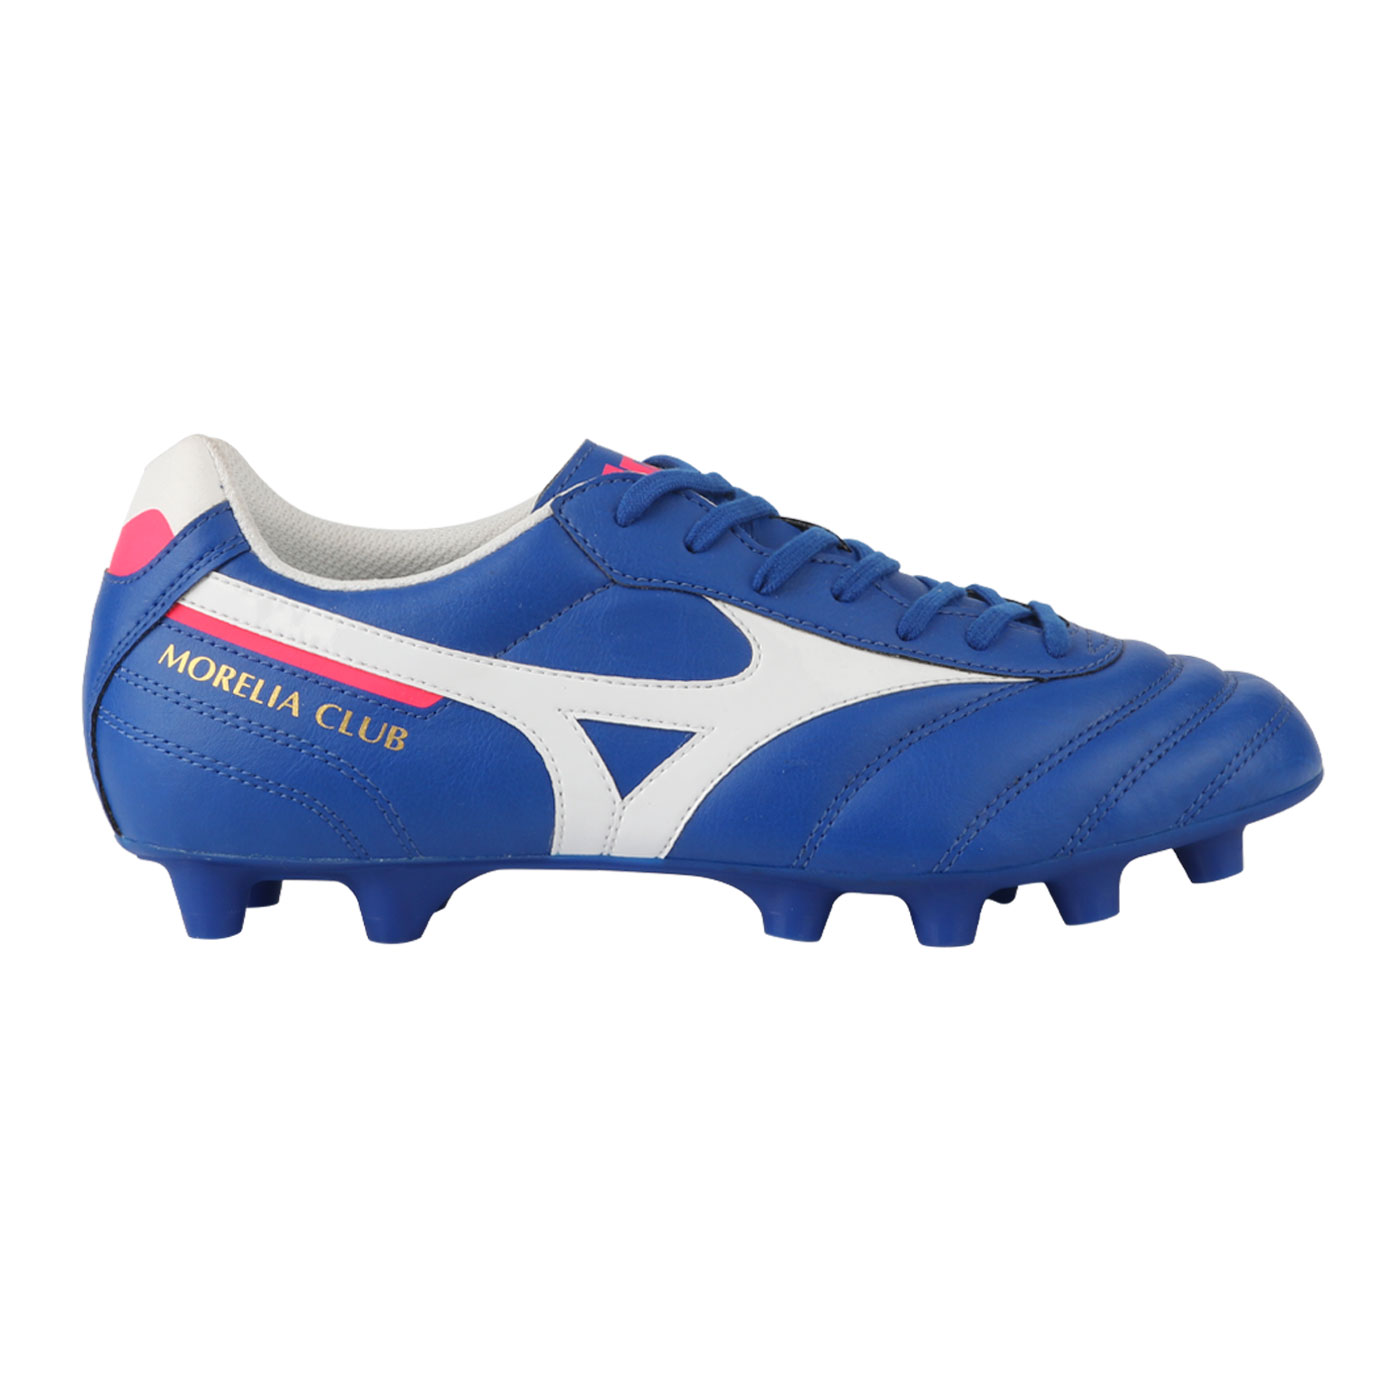 MORELIA II CLUB (Short Tongue)-REFLEX BLUE C/WHITE